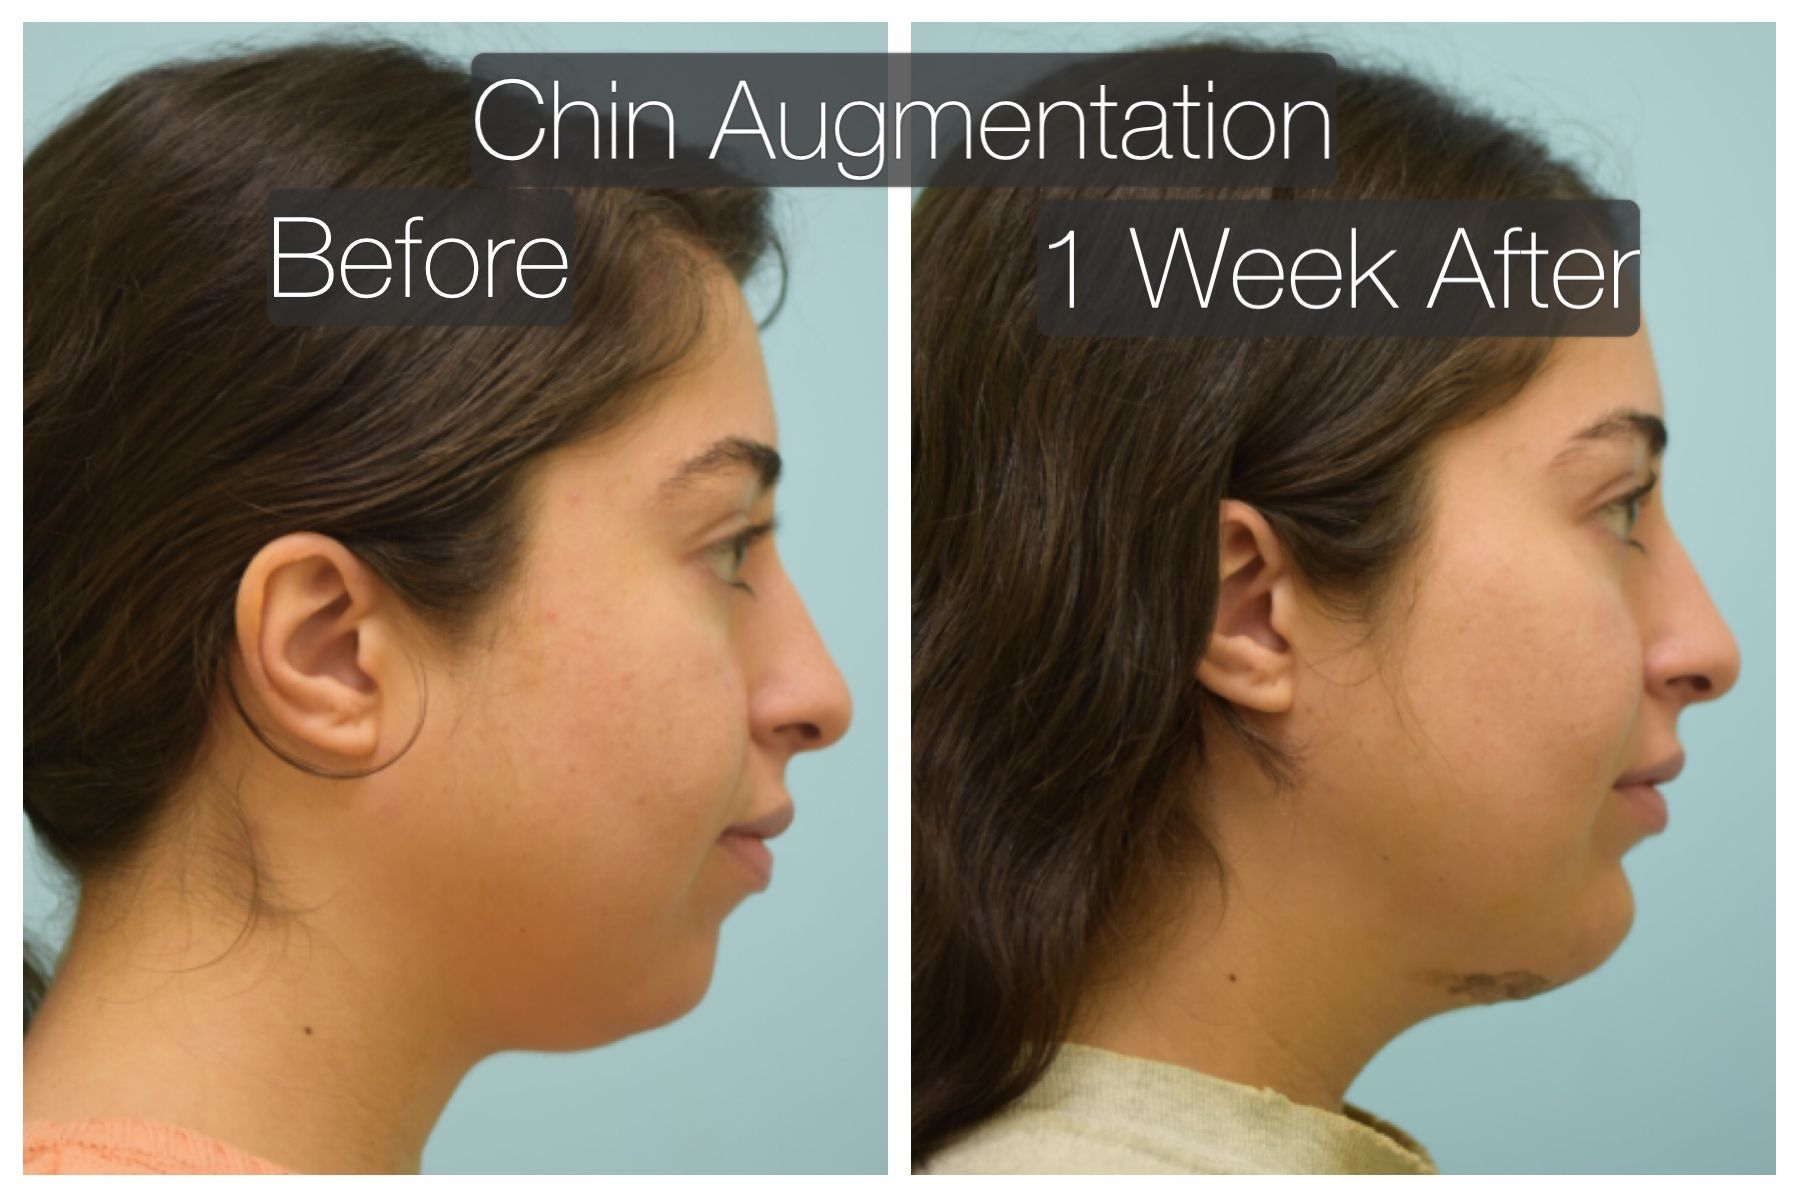 This Woman Is Shown Before And 1 Week After A Chin Implant And Neck Liposuction Chin Implant Chin Augmentation Facial Implant